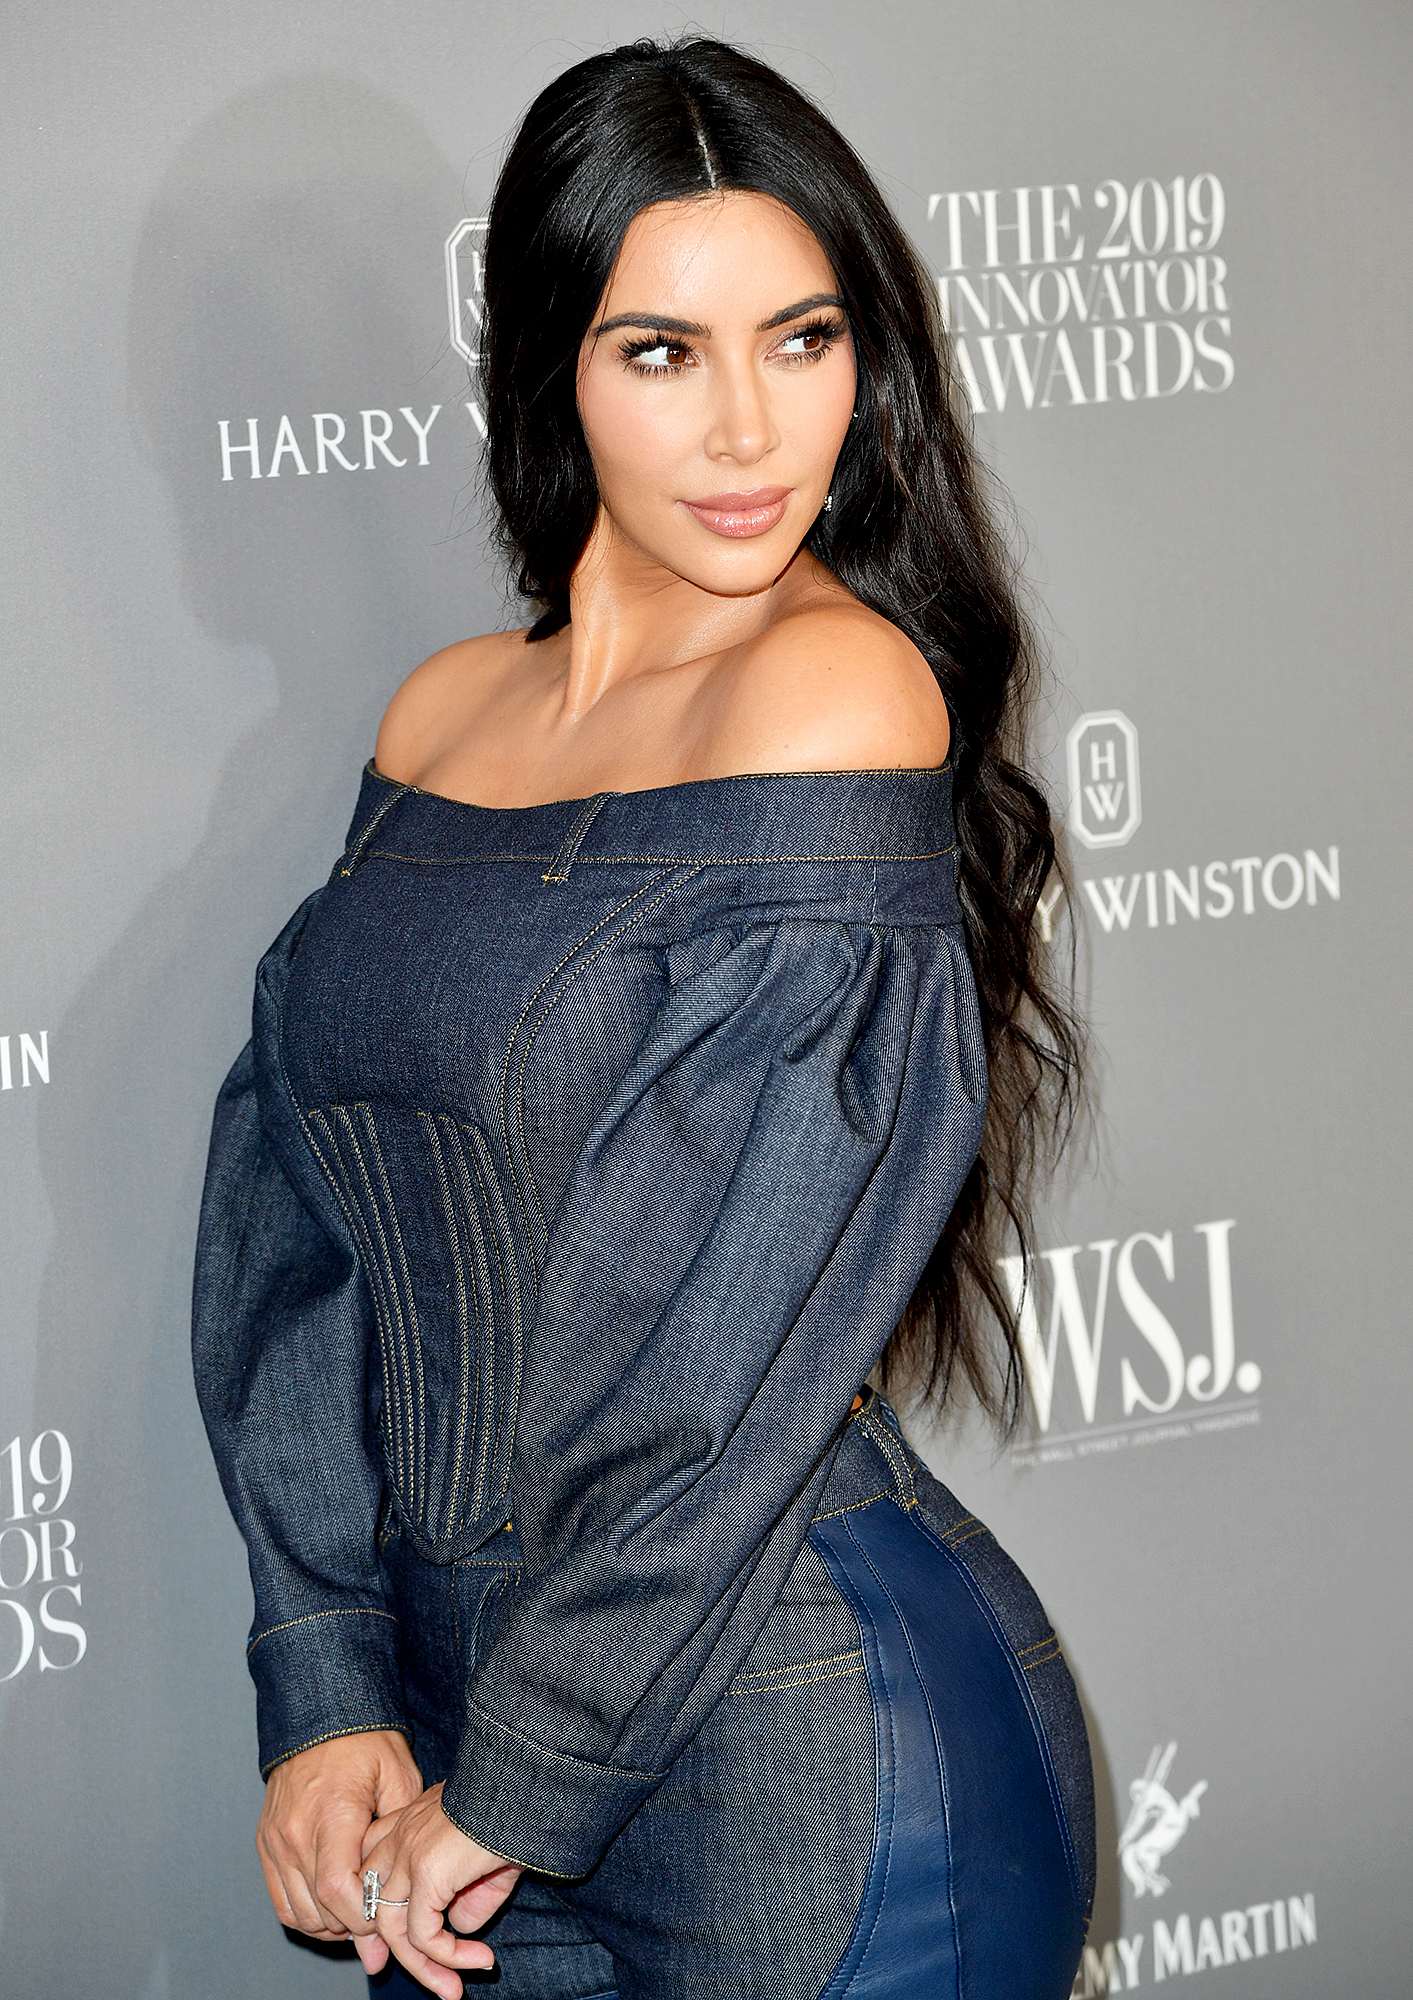 Kim-Kardashian-Shares-BTS-Fitting-Photo-In-a-Versace-Dress-That-Didn't-Fit